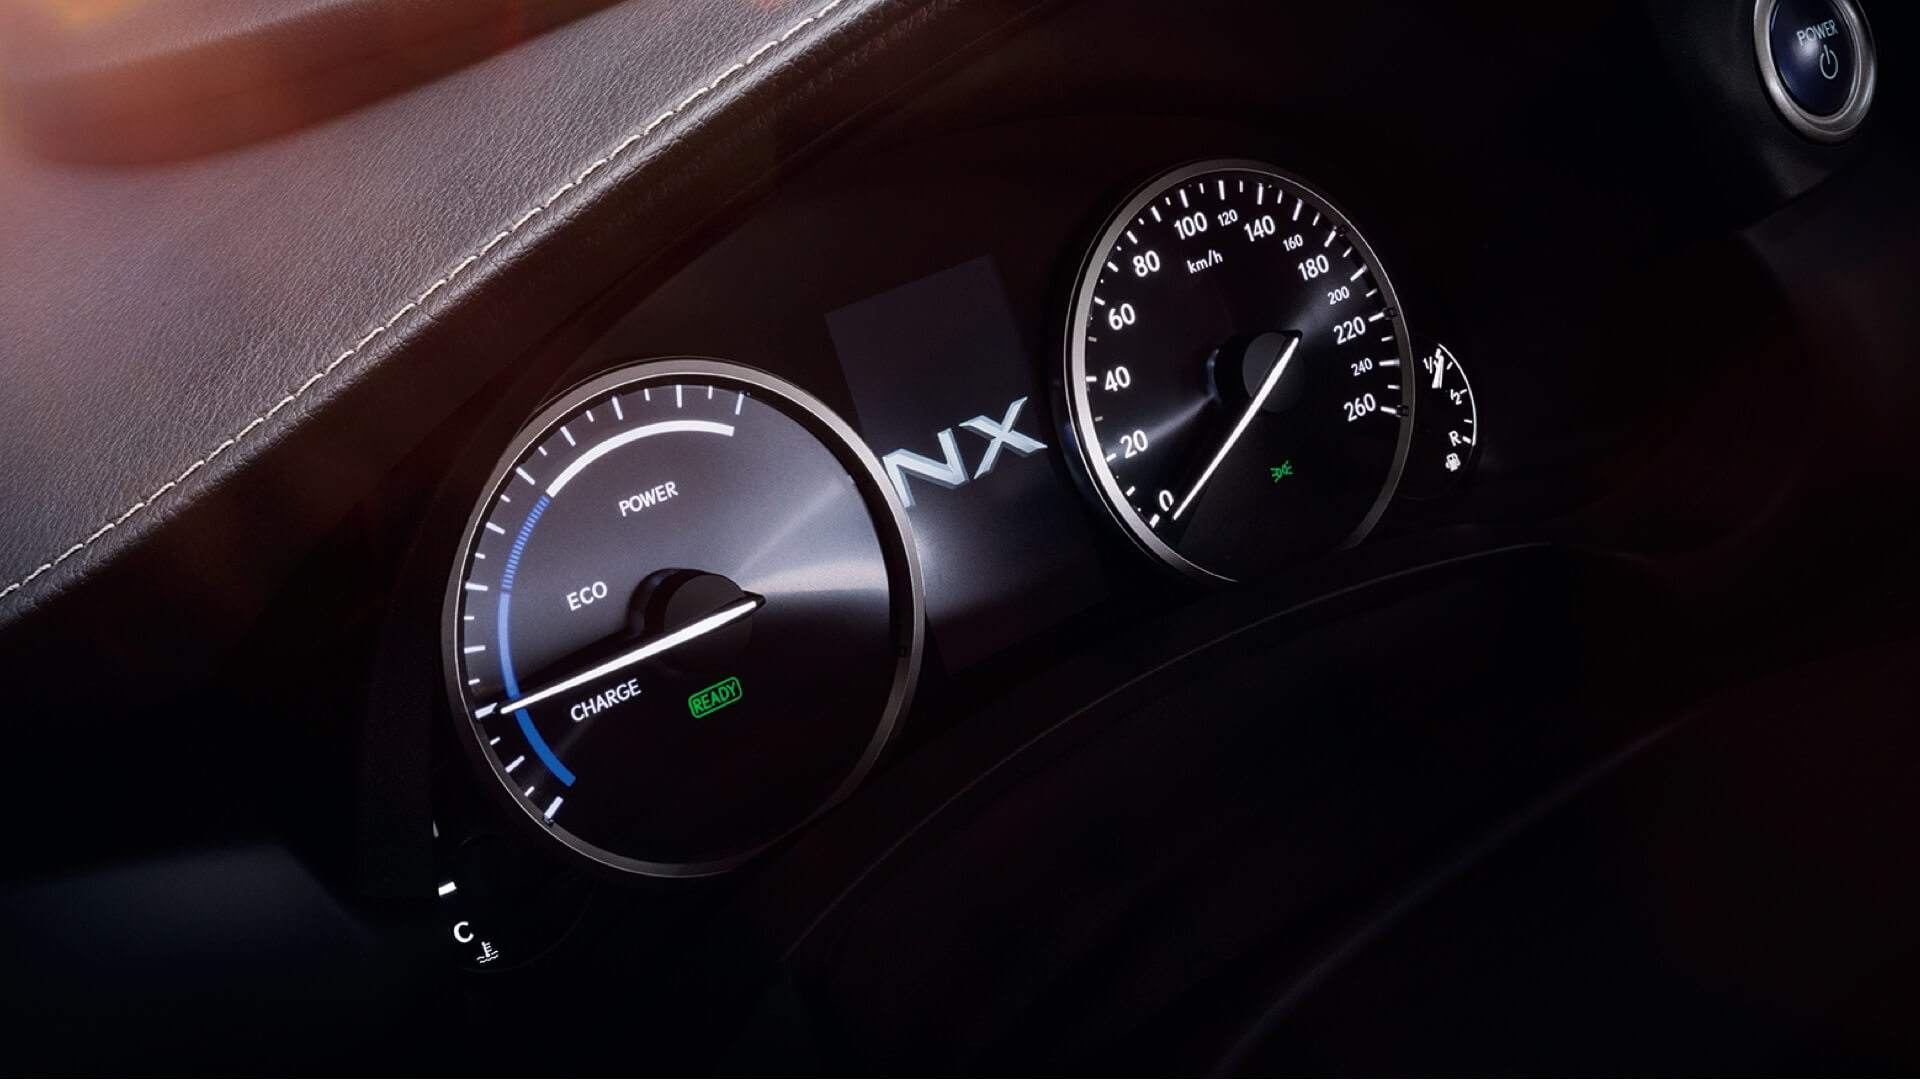 Lexus NX SUV kontrollpanel viser speedometer og måler for charge eco og power